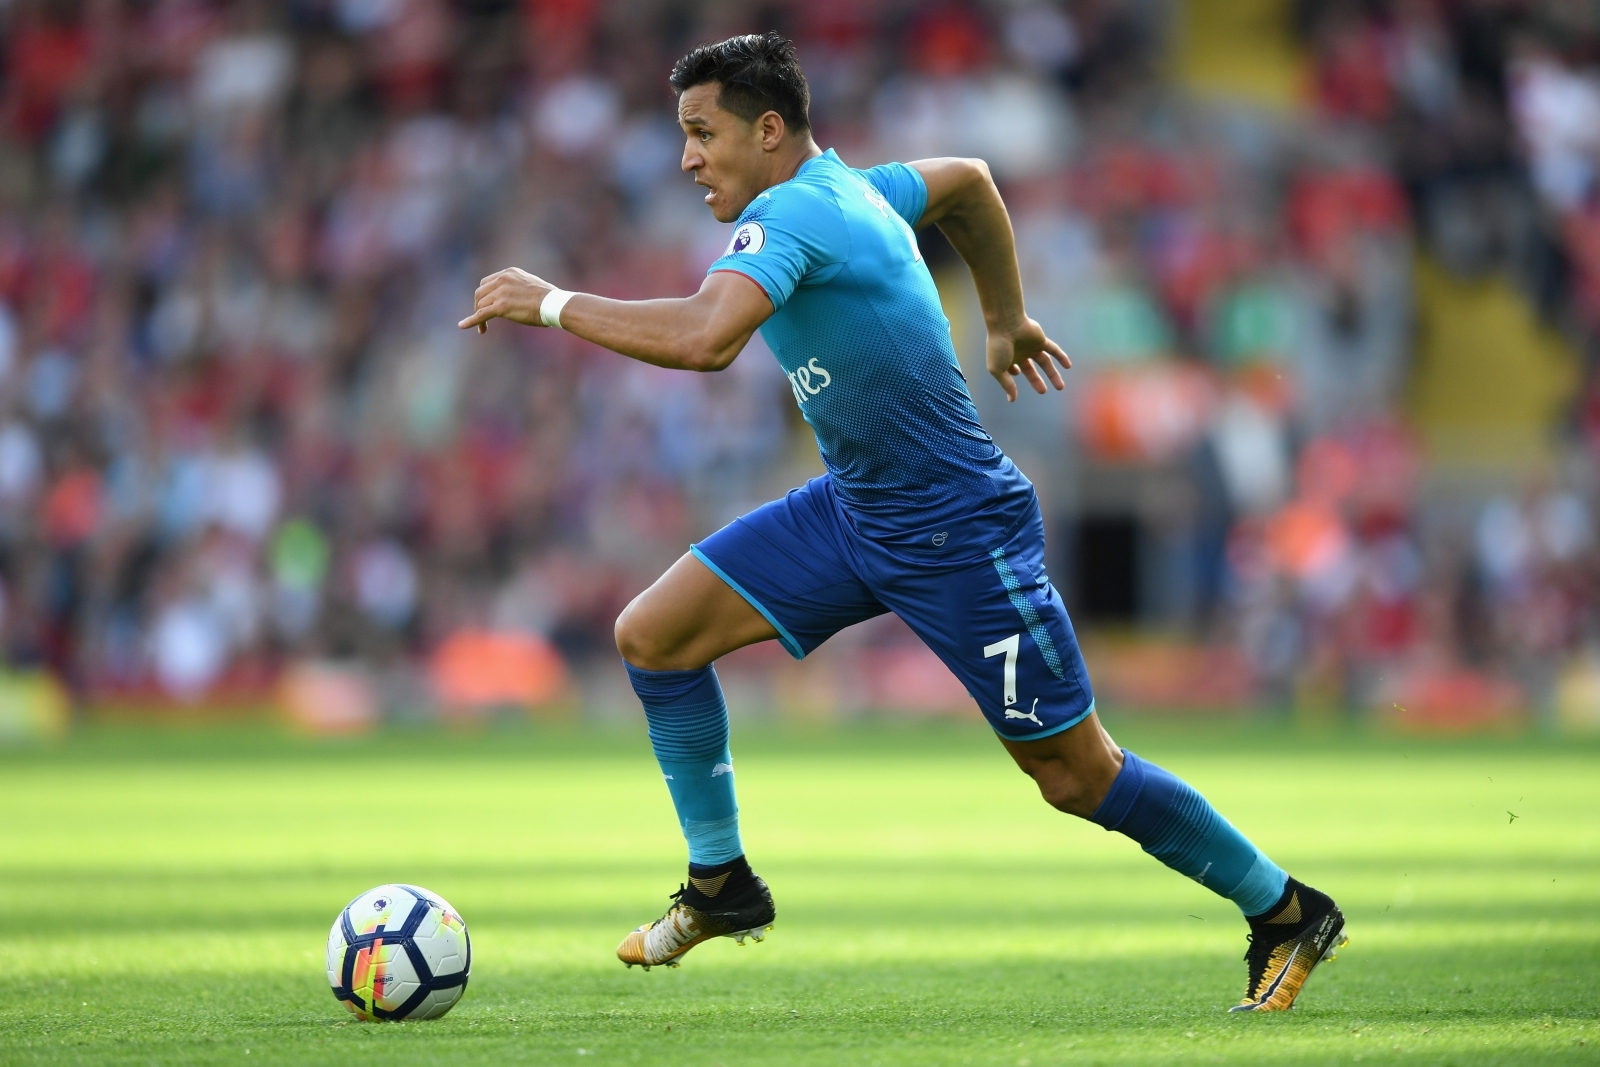 After Alexis Transfer Drama, Arsenal Boss Wants This